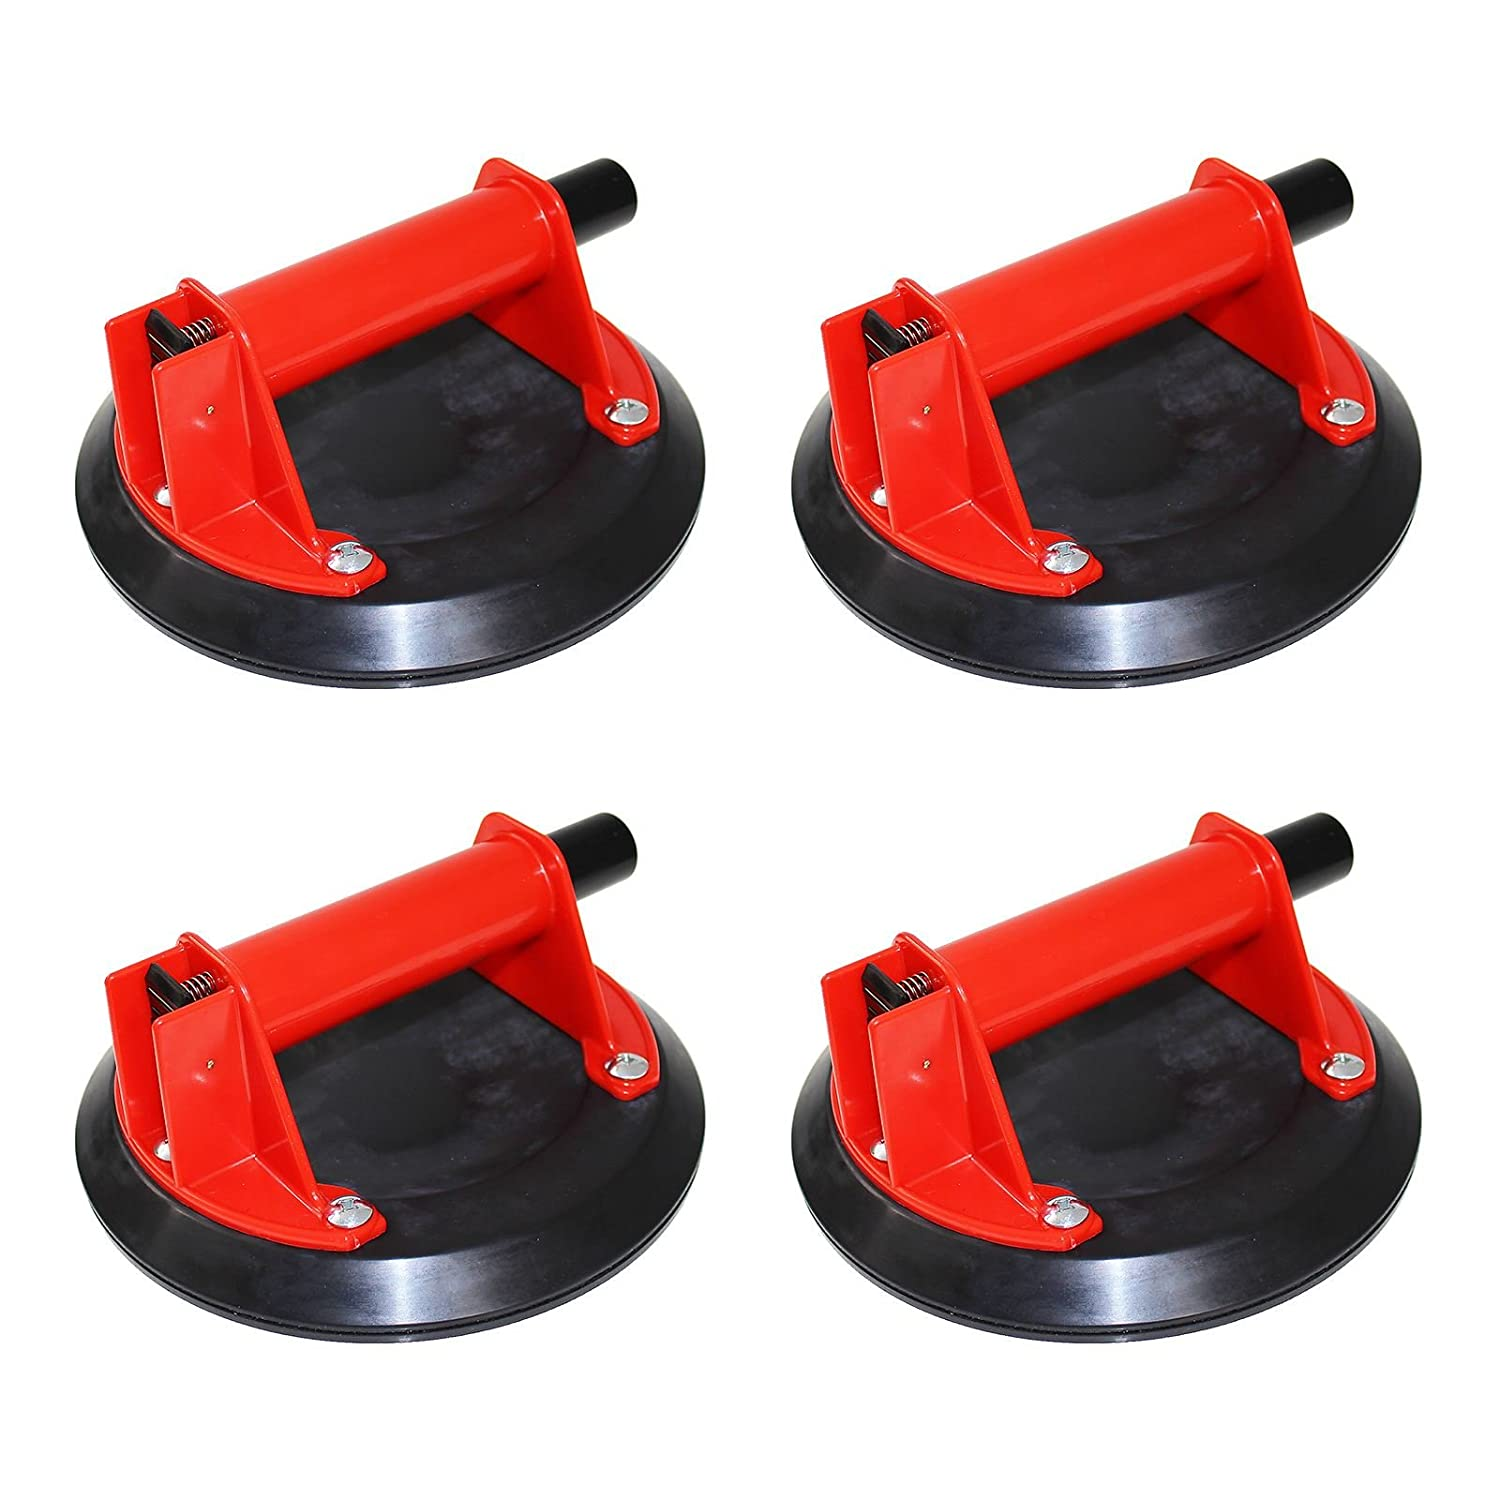 2 x Xpert 8' Single Cup Vacuum Glazing Lifter Pump Action Suction Glass Granite Lift Sucker Window Ware